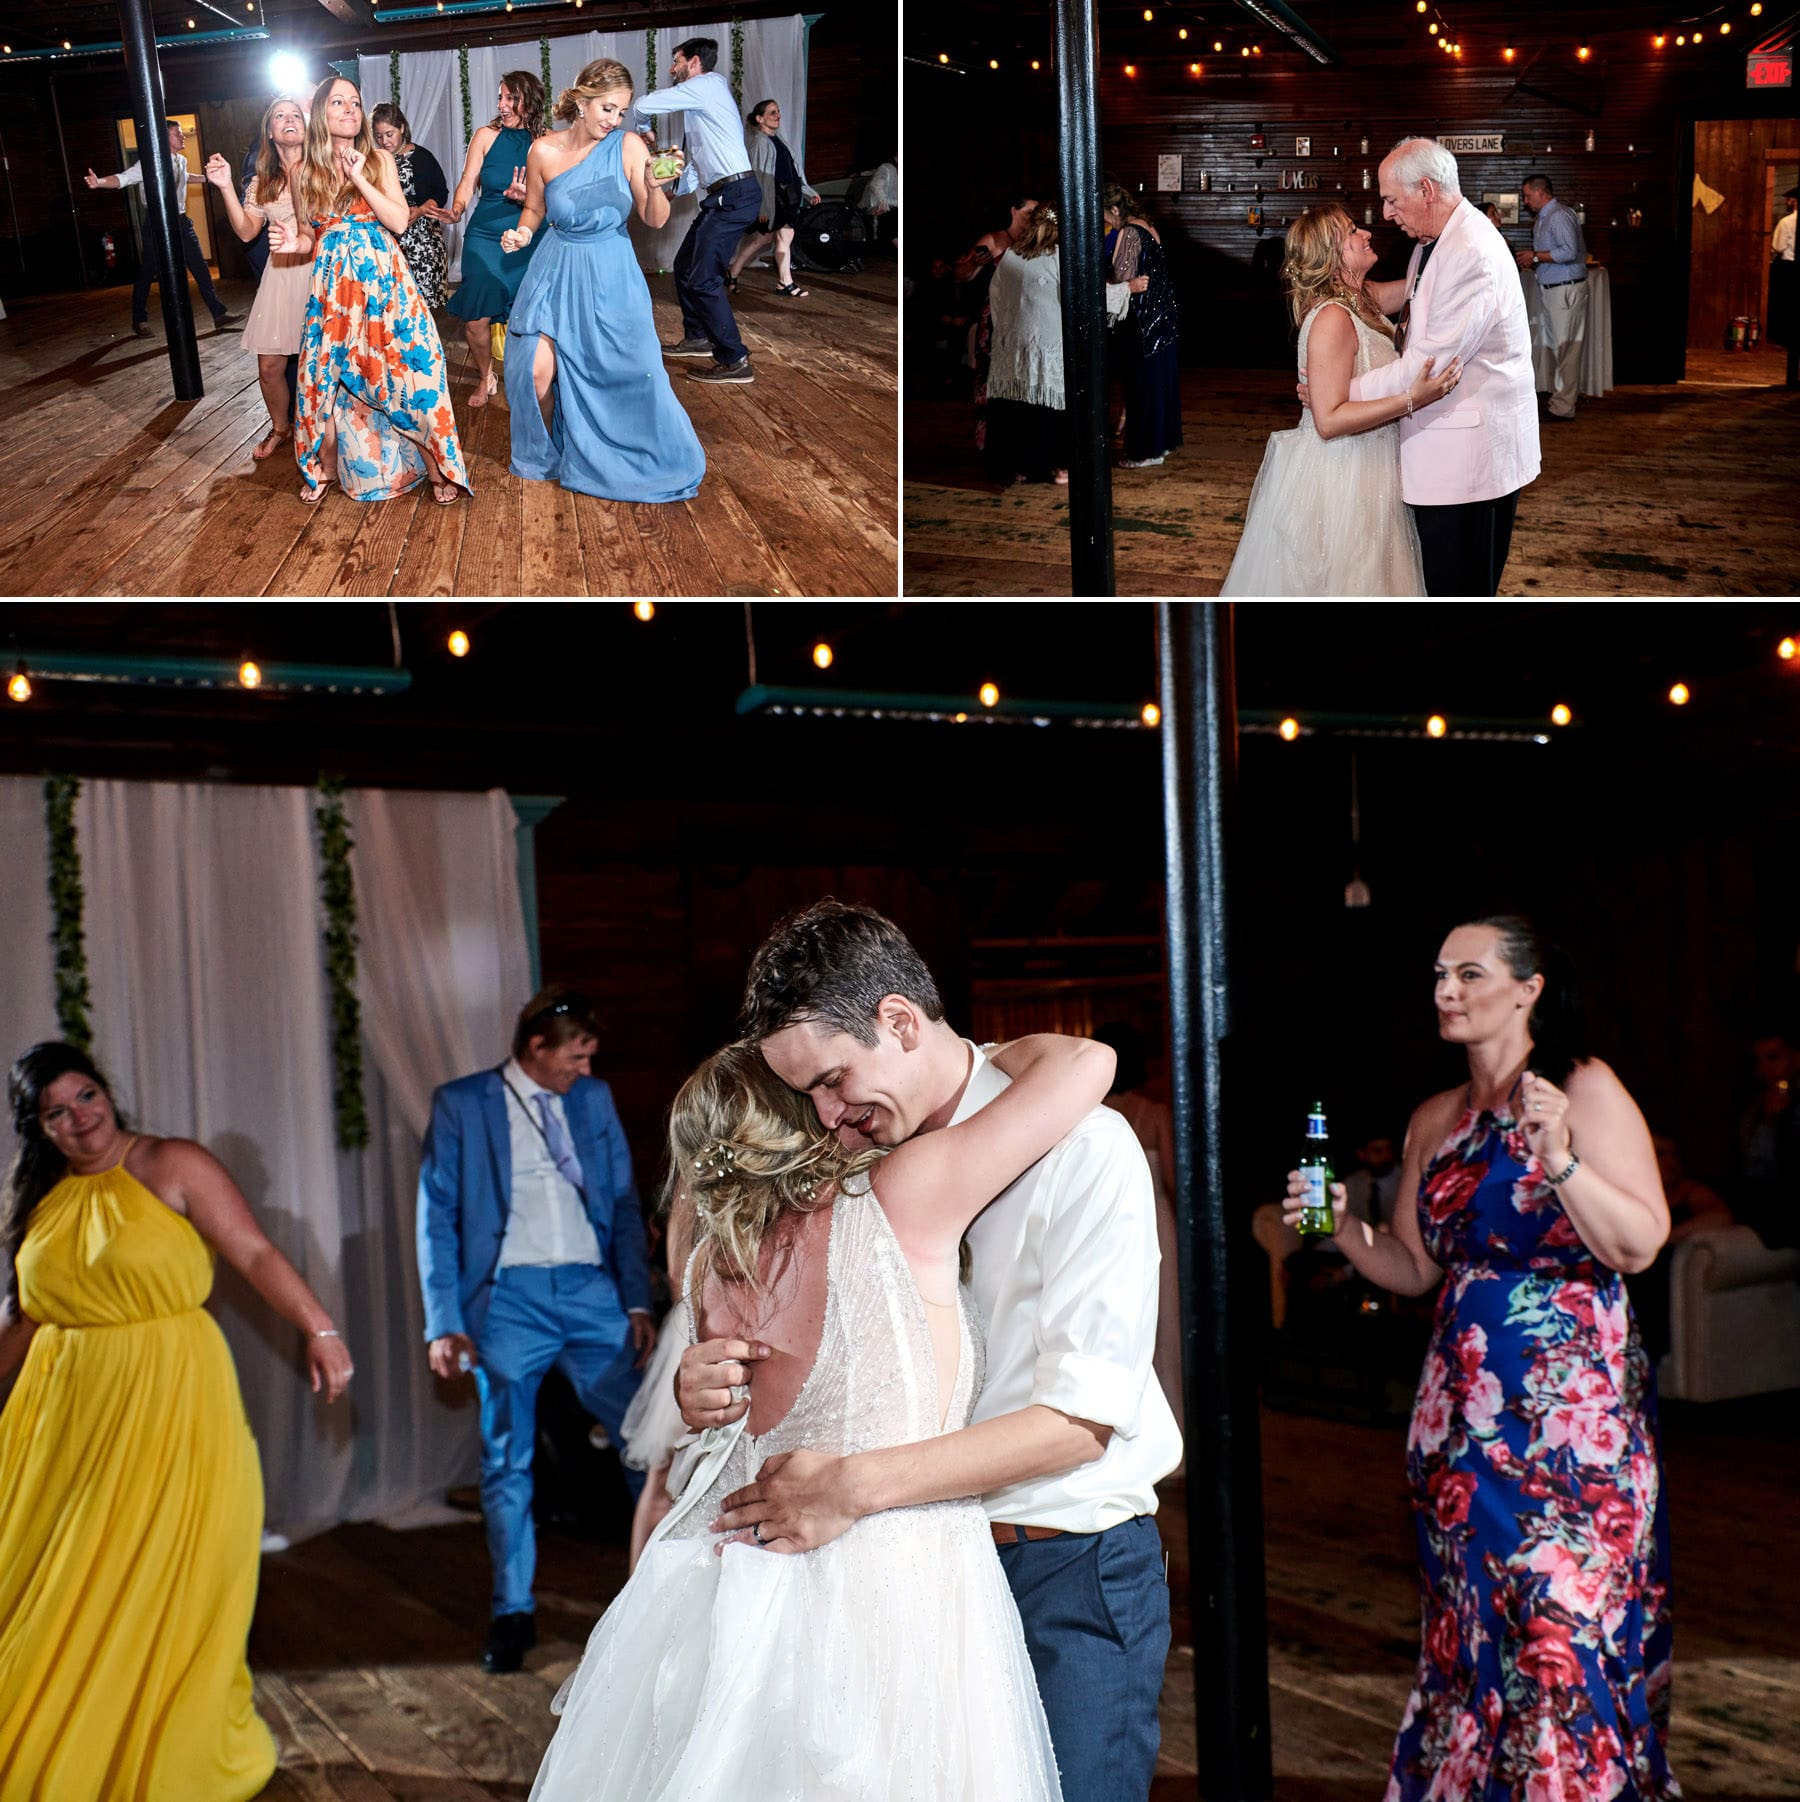 wedding photos in the barn at maskers barn